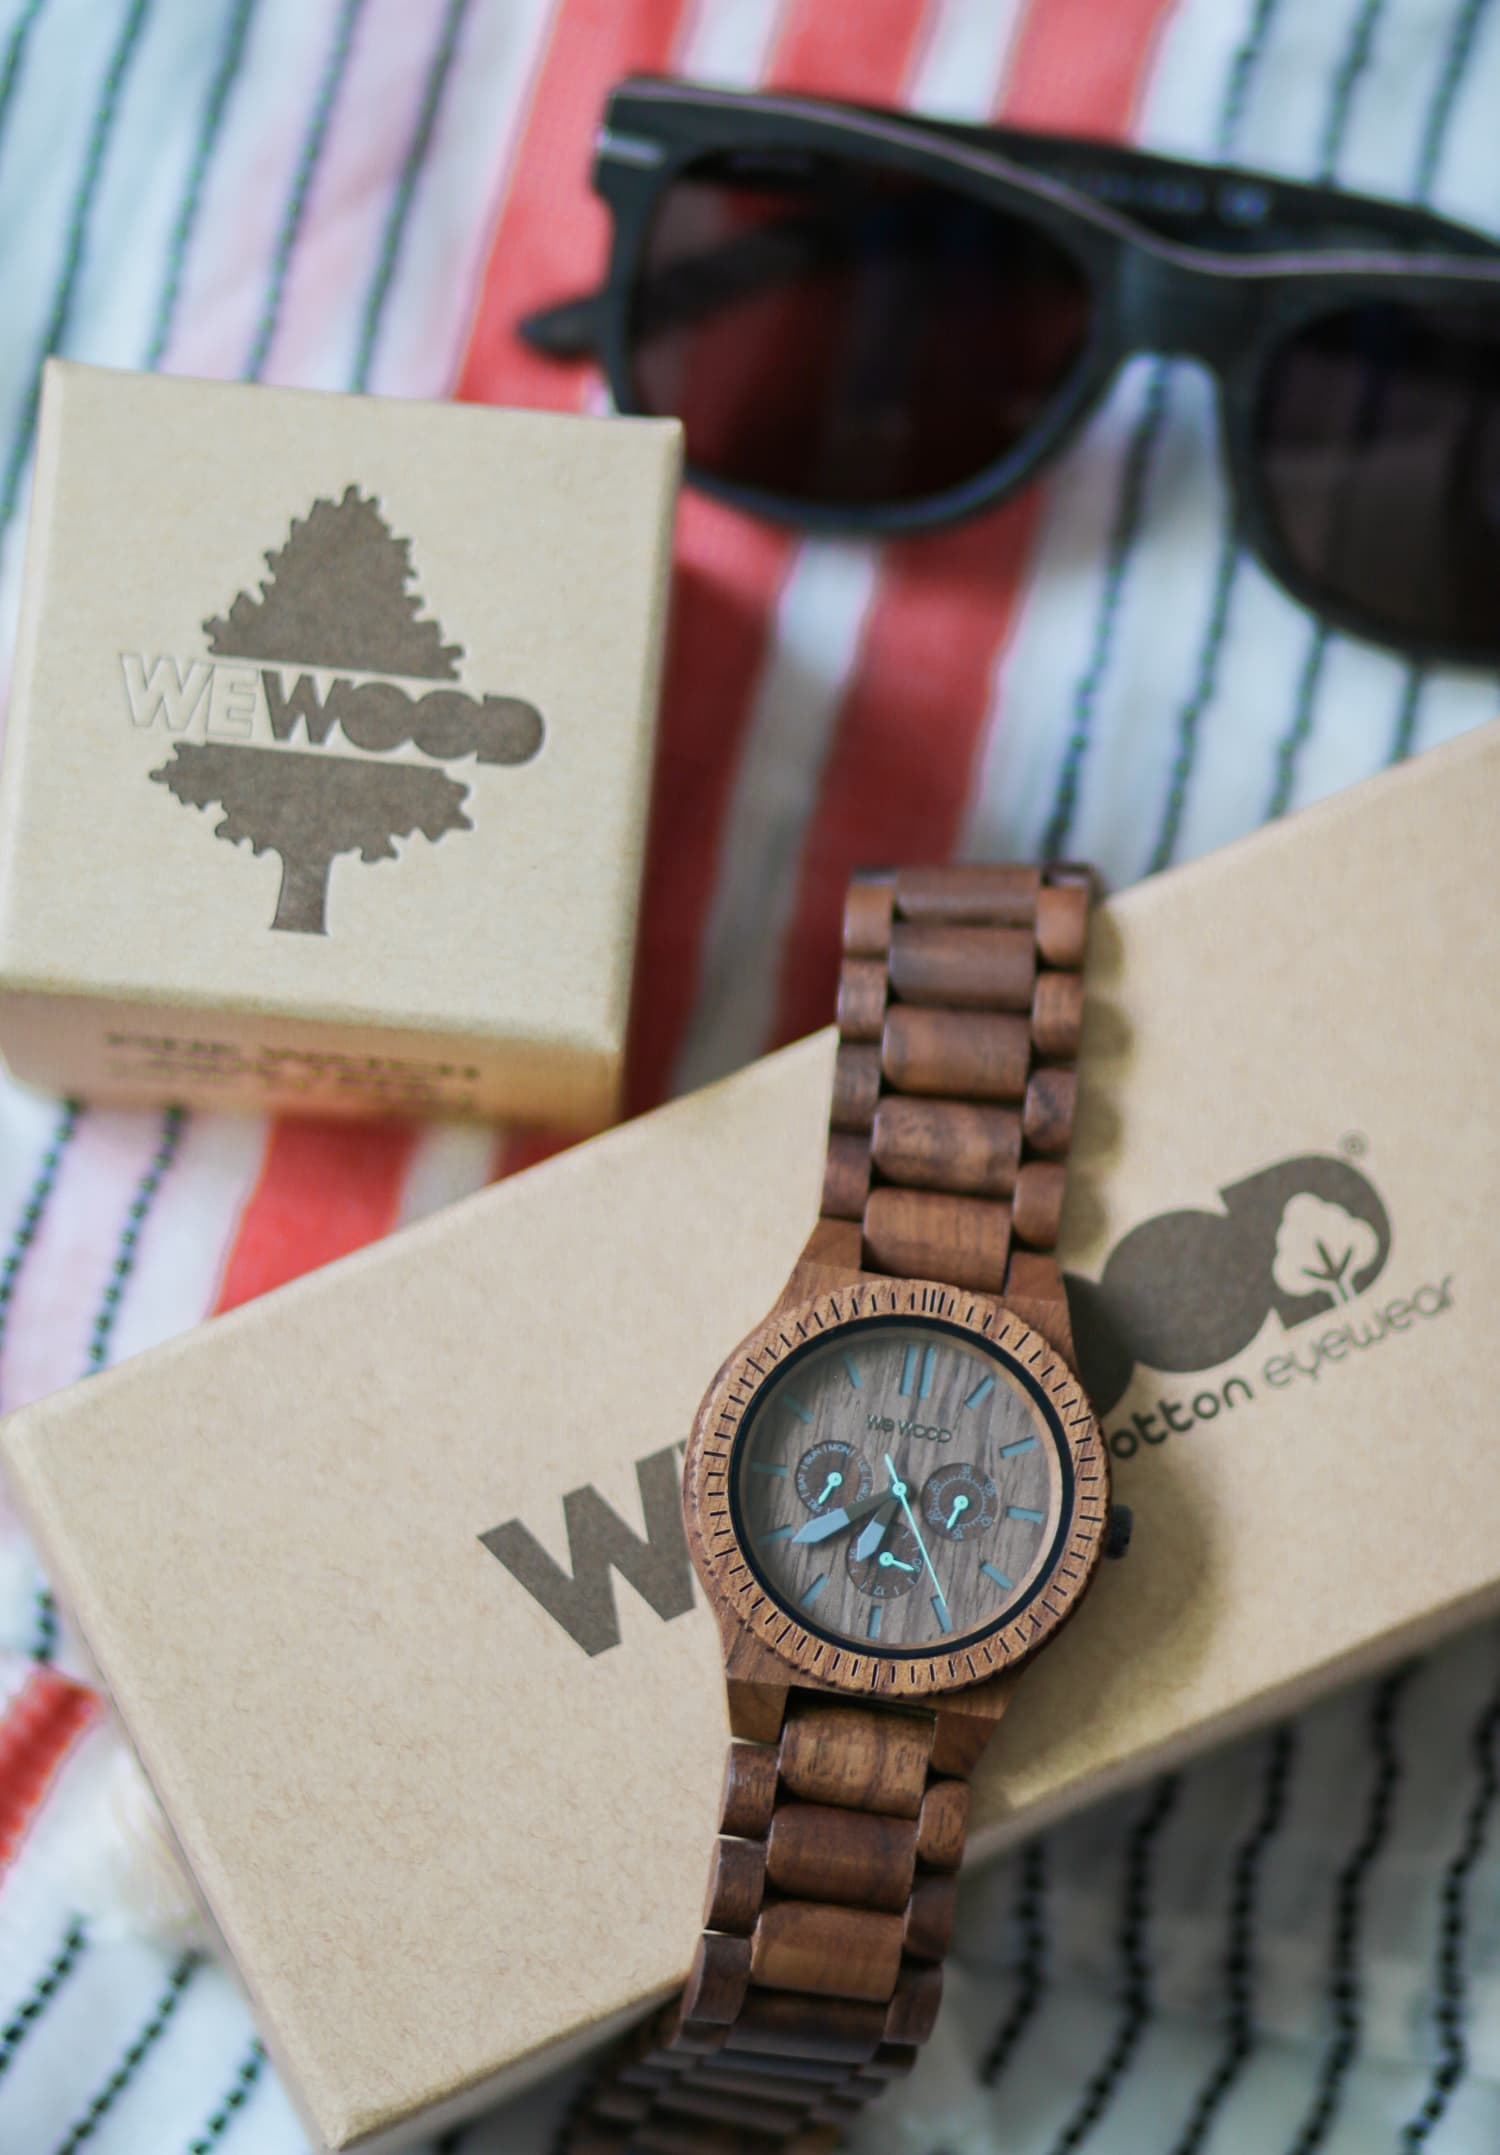 Looking for the perfect Father's Day present for your Dad or husband? WeWood watches are SO freakin' cool. They're made of wood pulp and cotton fibers, so they're eco-friendly. Plus, they designs are super trendy, and the company plants a tree for every item sold! Click through to see Ashley Brooke Nicholas full review on their watches and sunglasses + learn how you can get free shipping and a free pin removal tool to help you resize your watch at home!